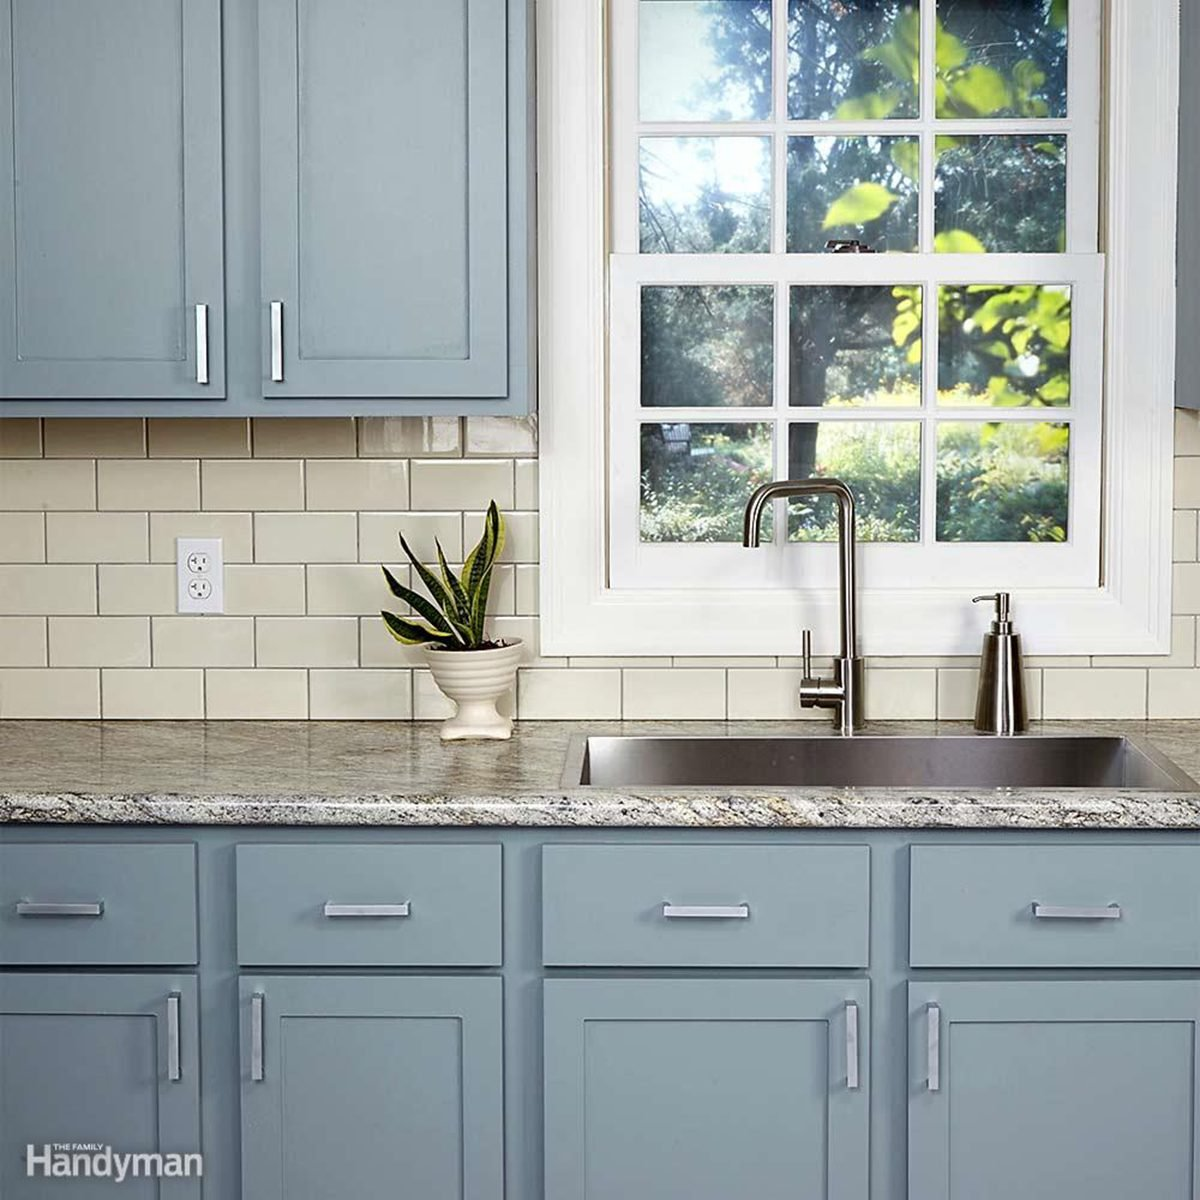 21 Surprising Tips on How to Paint Kitchen Cabinets | Taste of Home